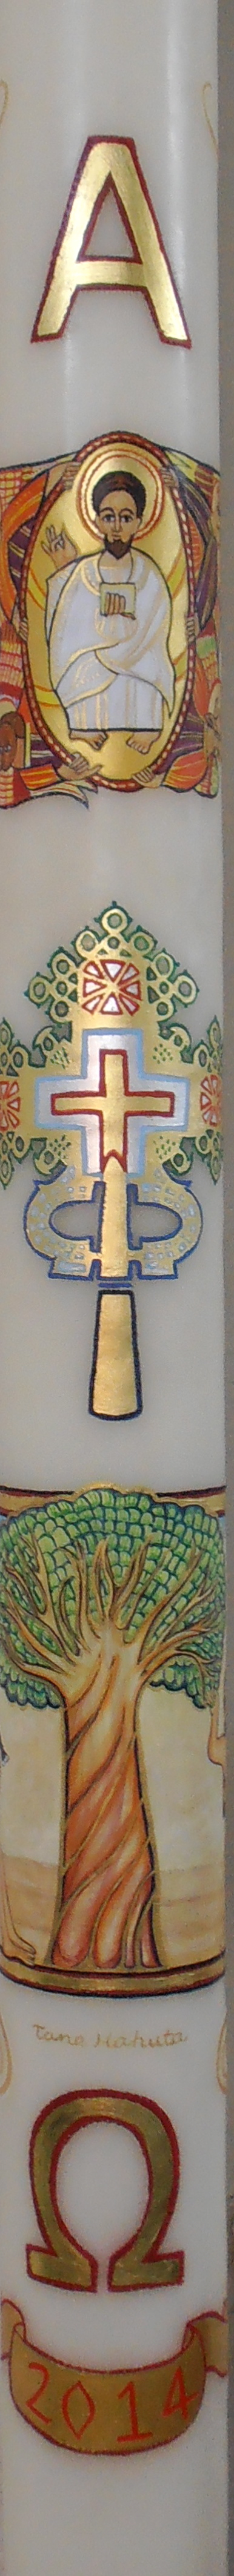 Paschal Candle. Saint Paul's Cathedral, London 2014